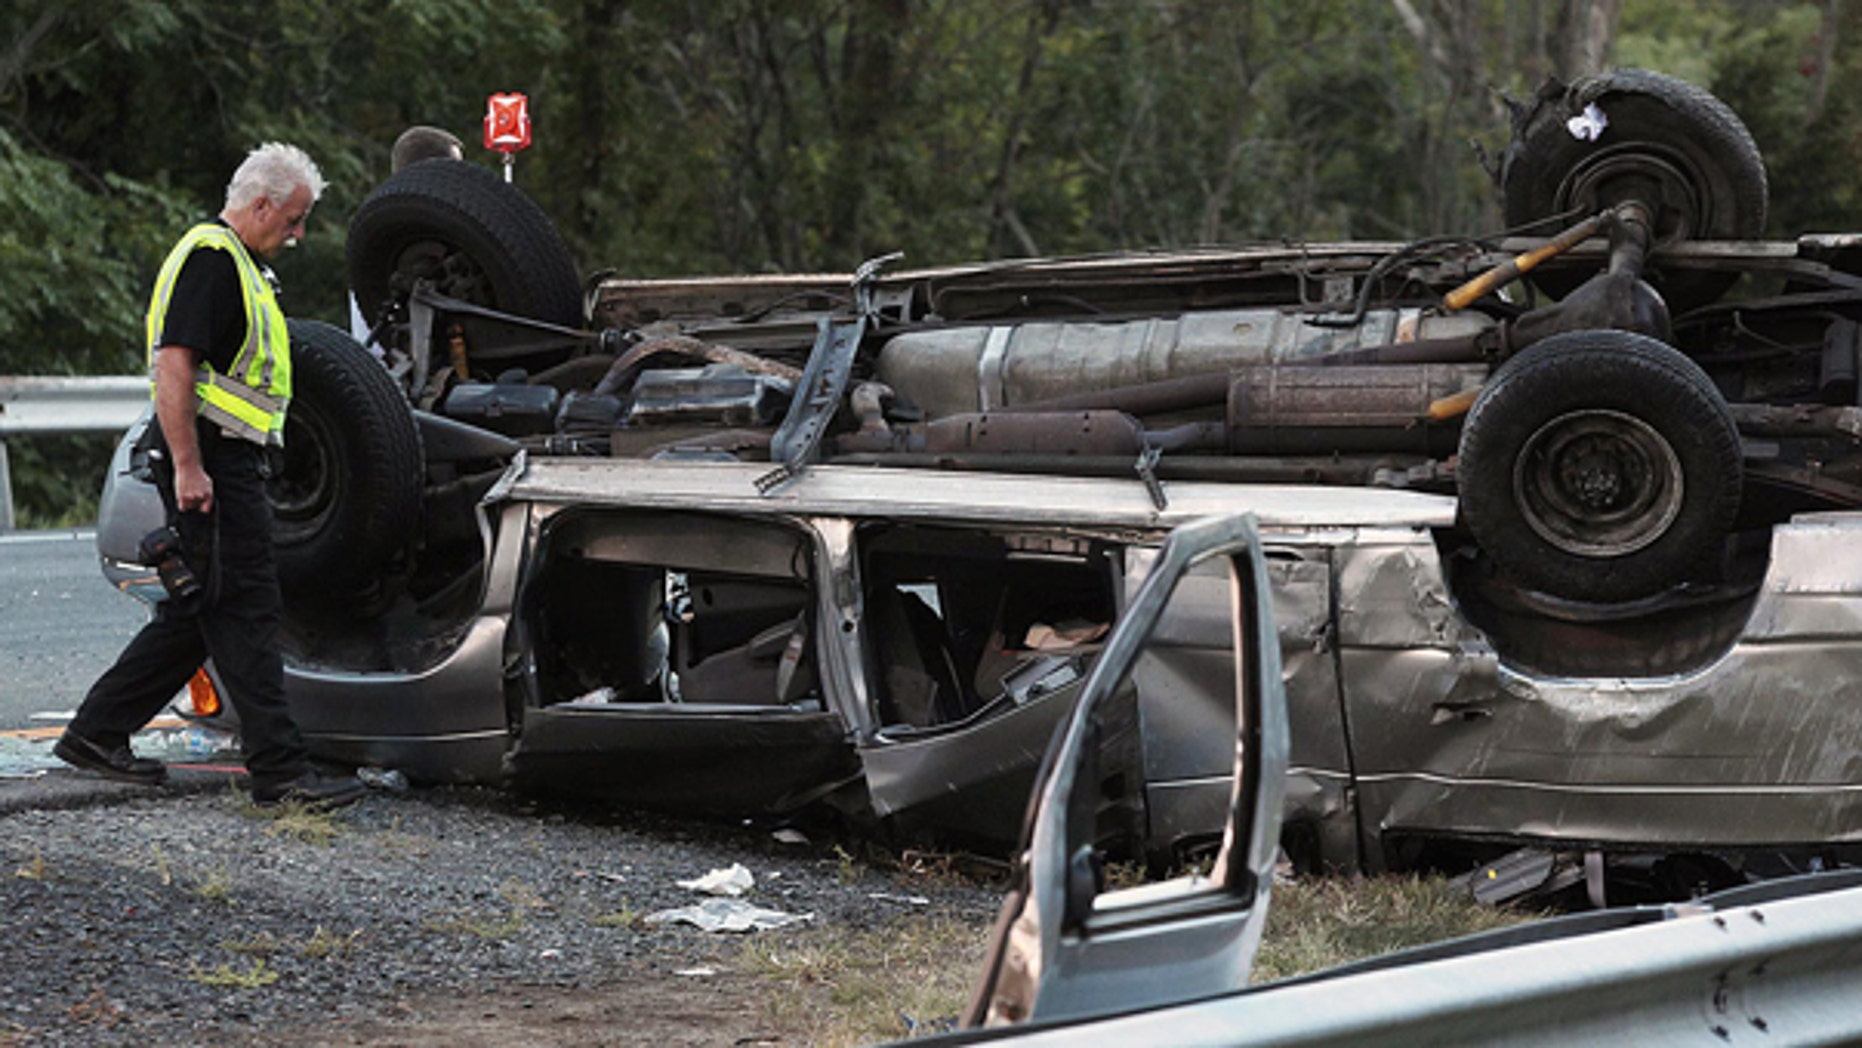 Sept. 18: State police investigate the scene of a fatal accident in Woodbury, N.Y. A passenger van carrying members of a church flipped over killing at least six people and injuring eight others, authorities said.